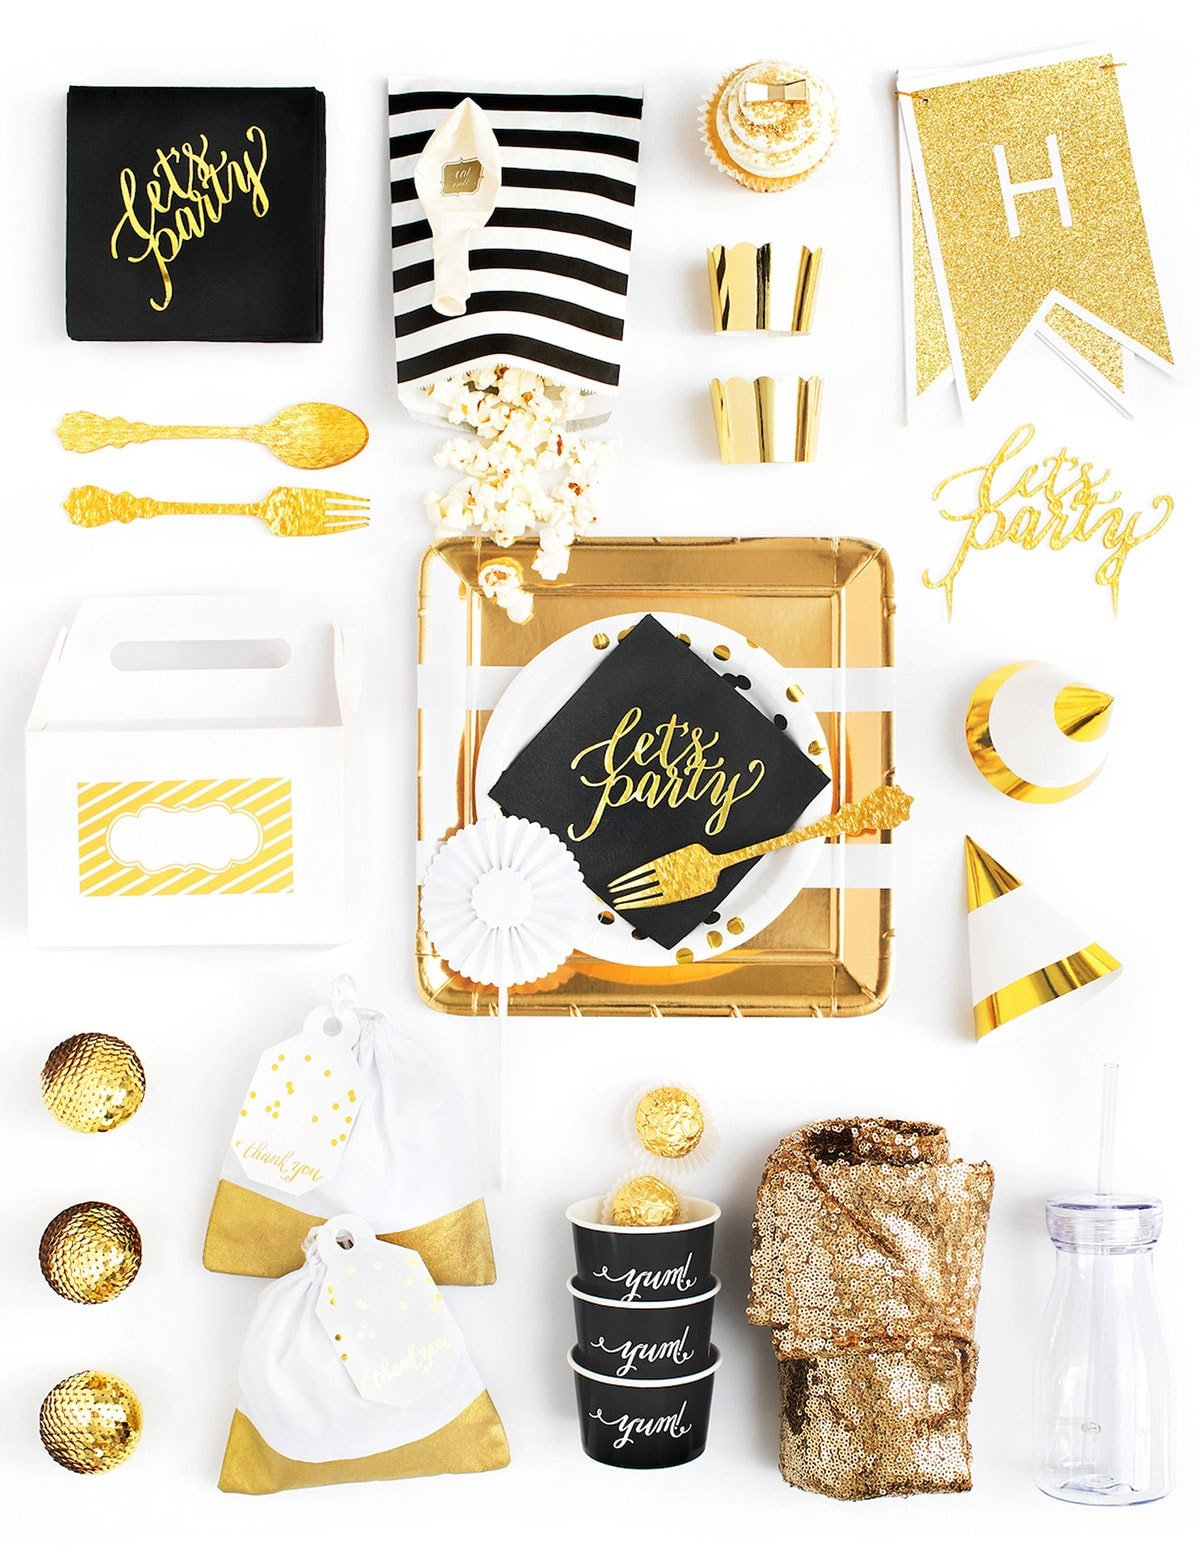 Black, White, and Gold Party in a Box!